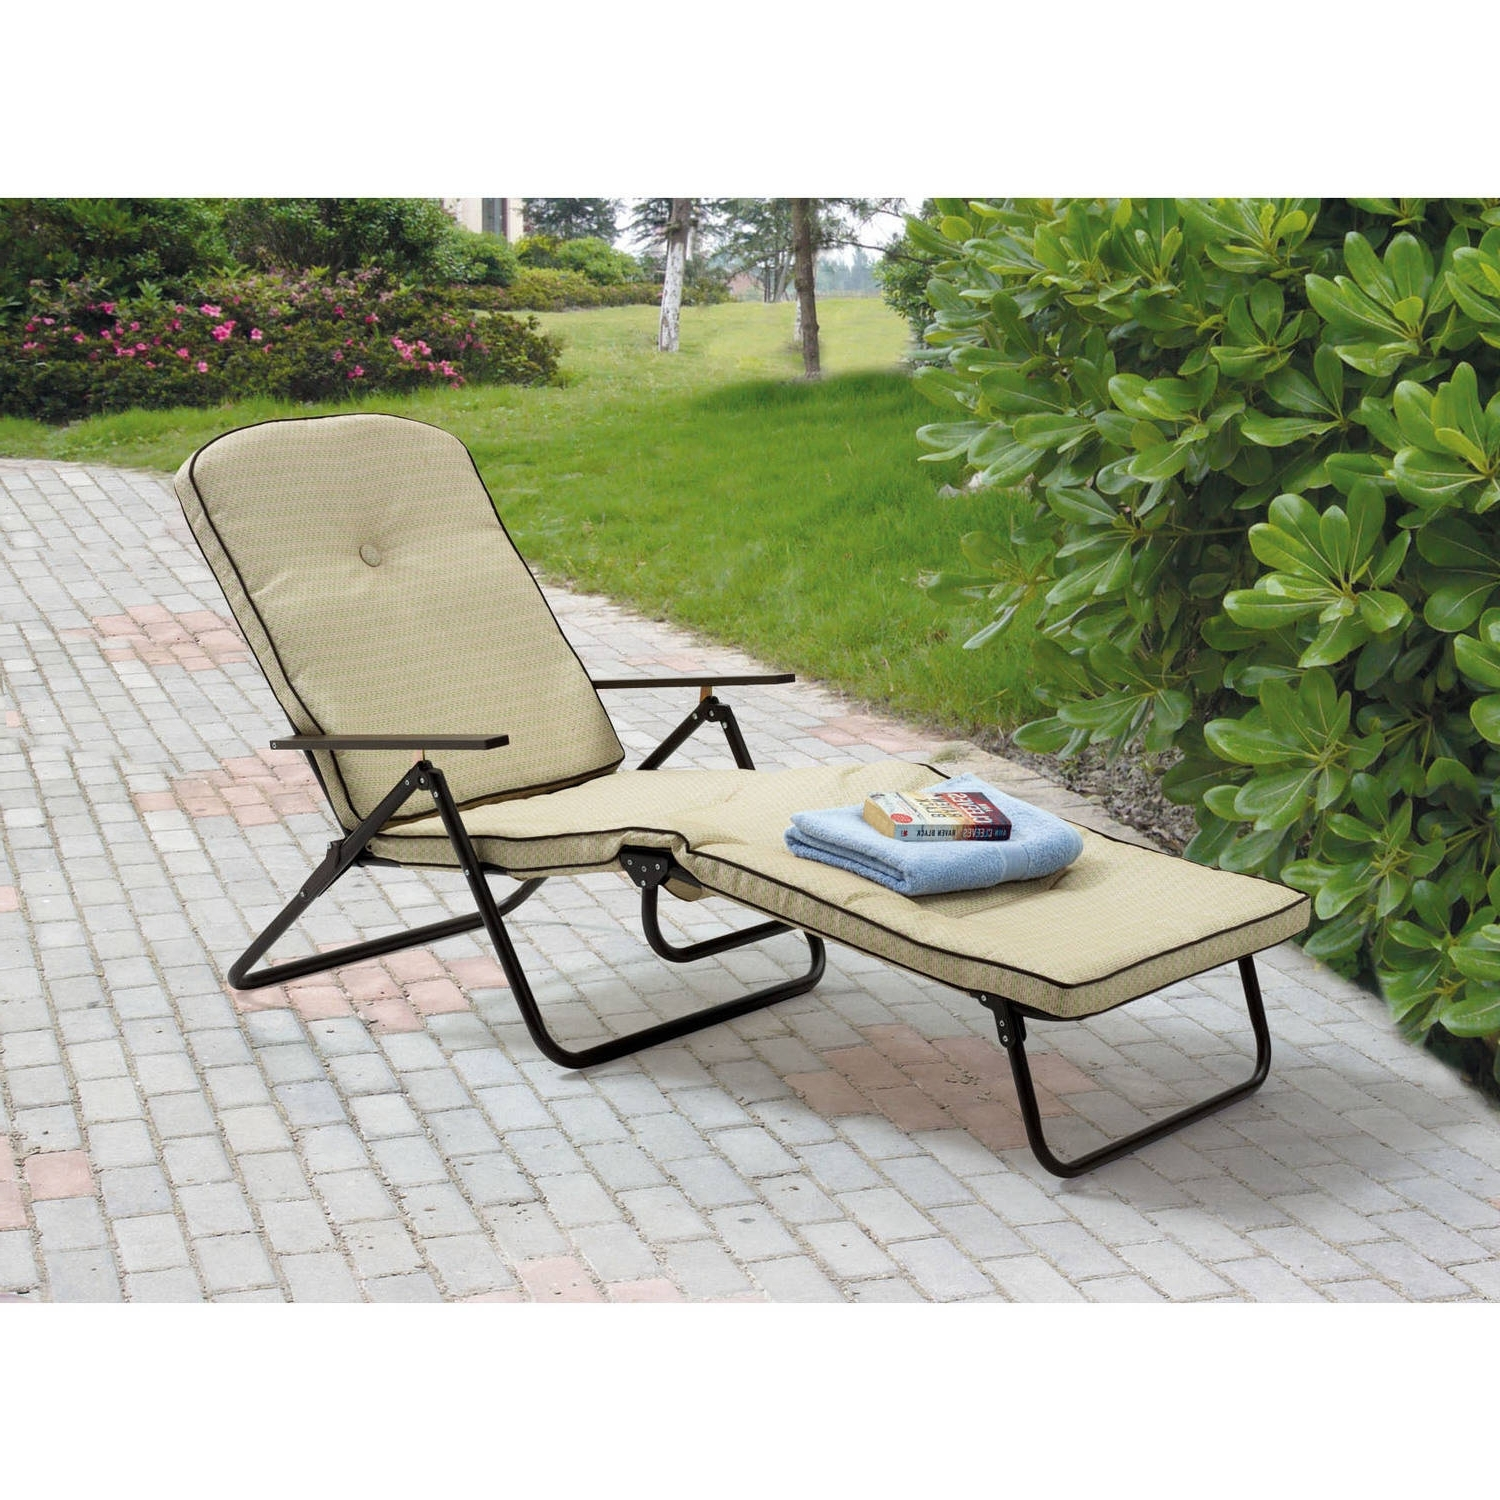 Mainstays Sand Dune Outdoor Padded Folding Chaise Lounge, Tan Regarding Current Foldable Chaise Lounges (View 13 of 15)